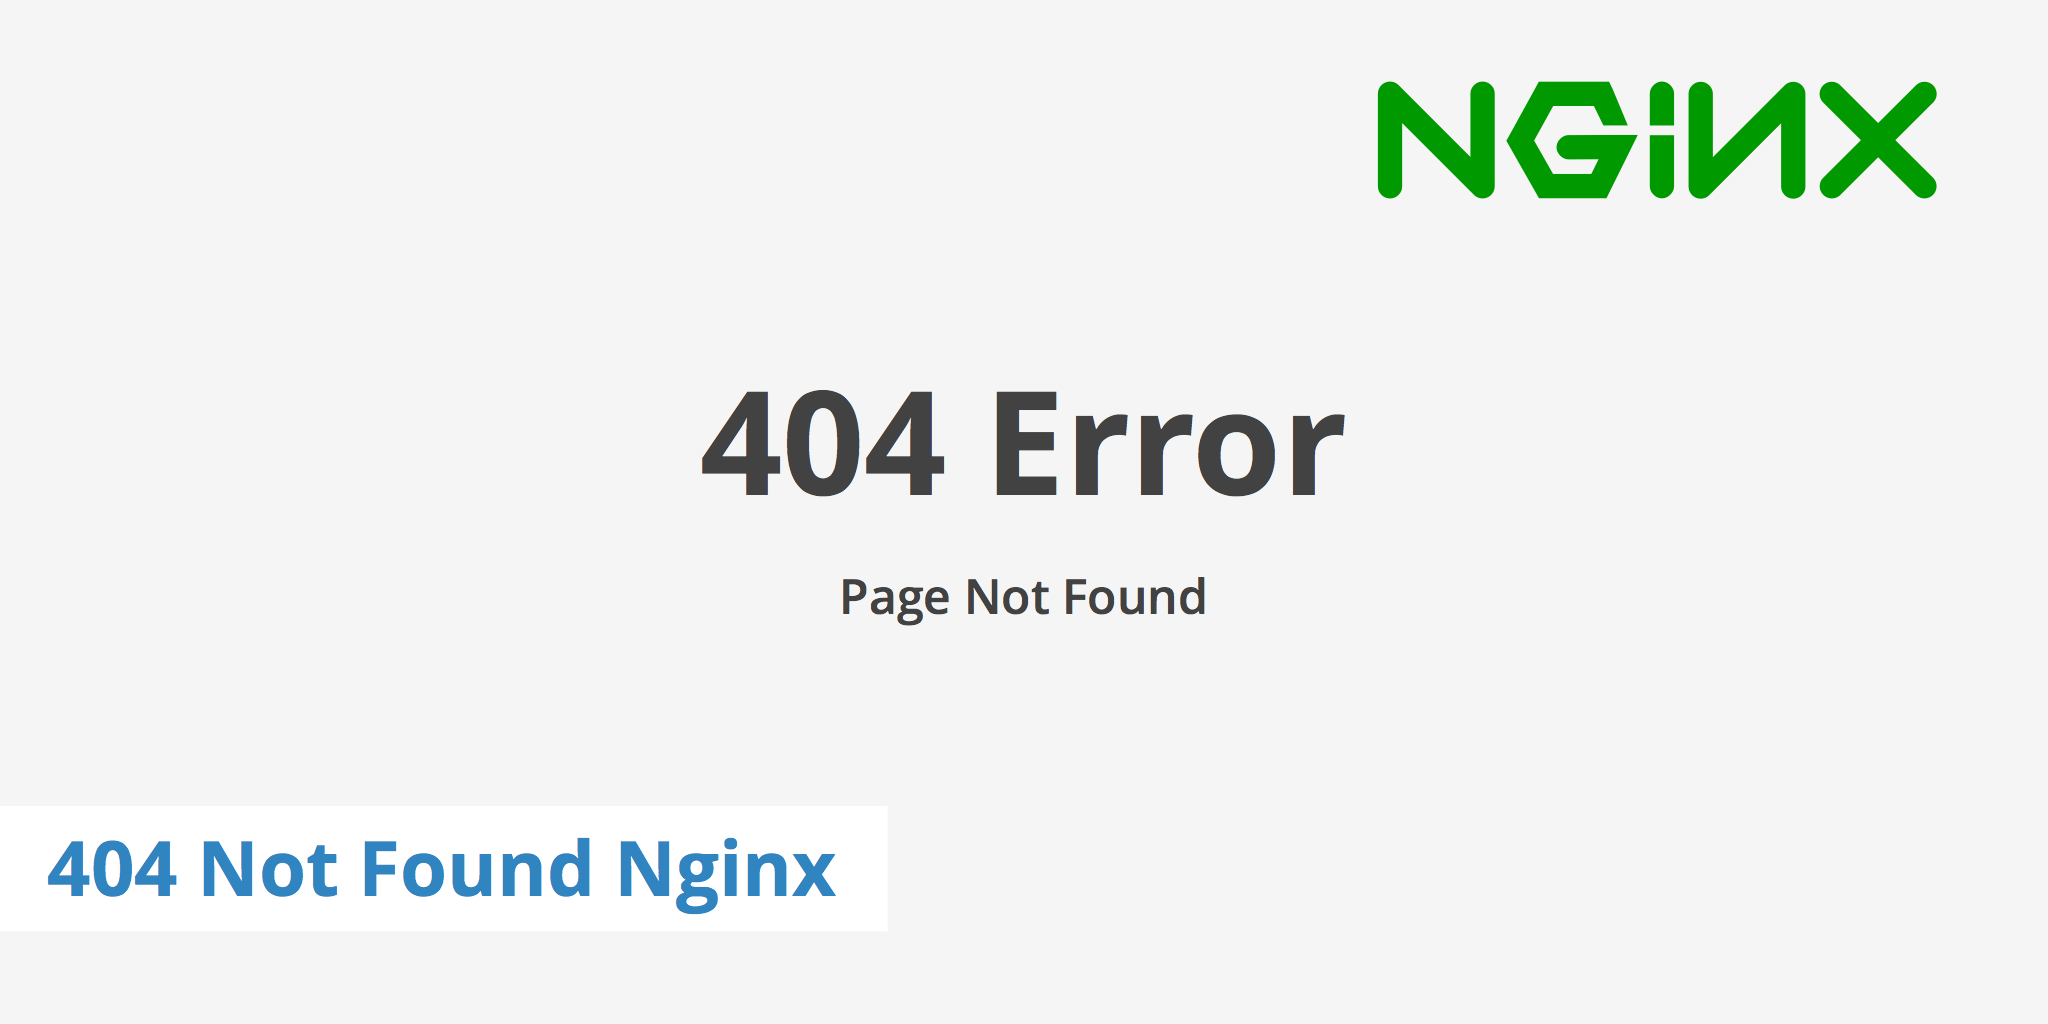 cba5199826c0d6 Fixing a 404 Not Found Nginx Error - KeyCDN Support